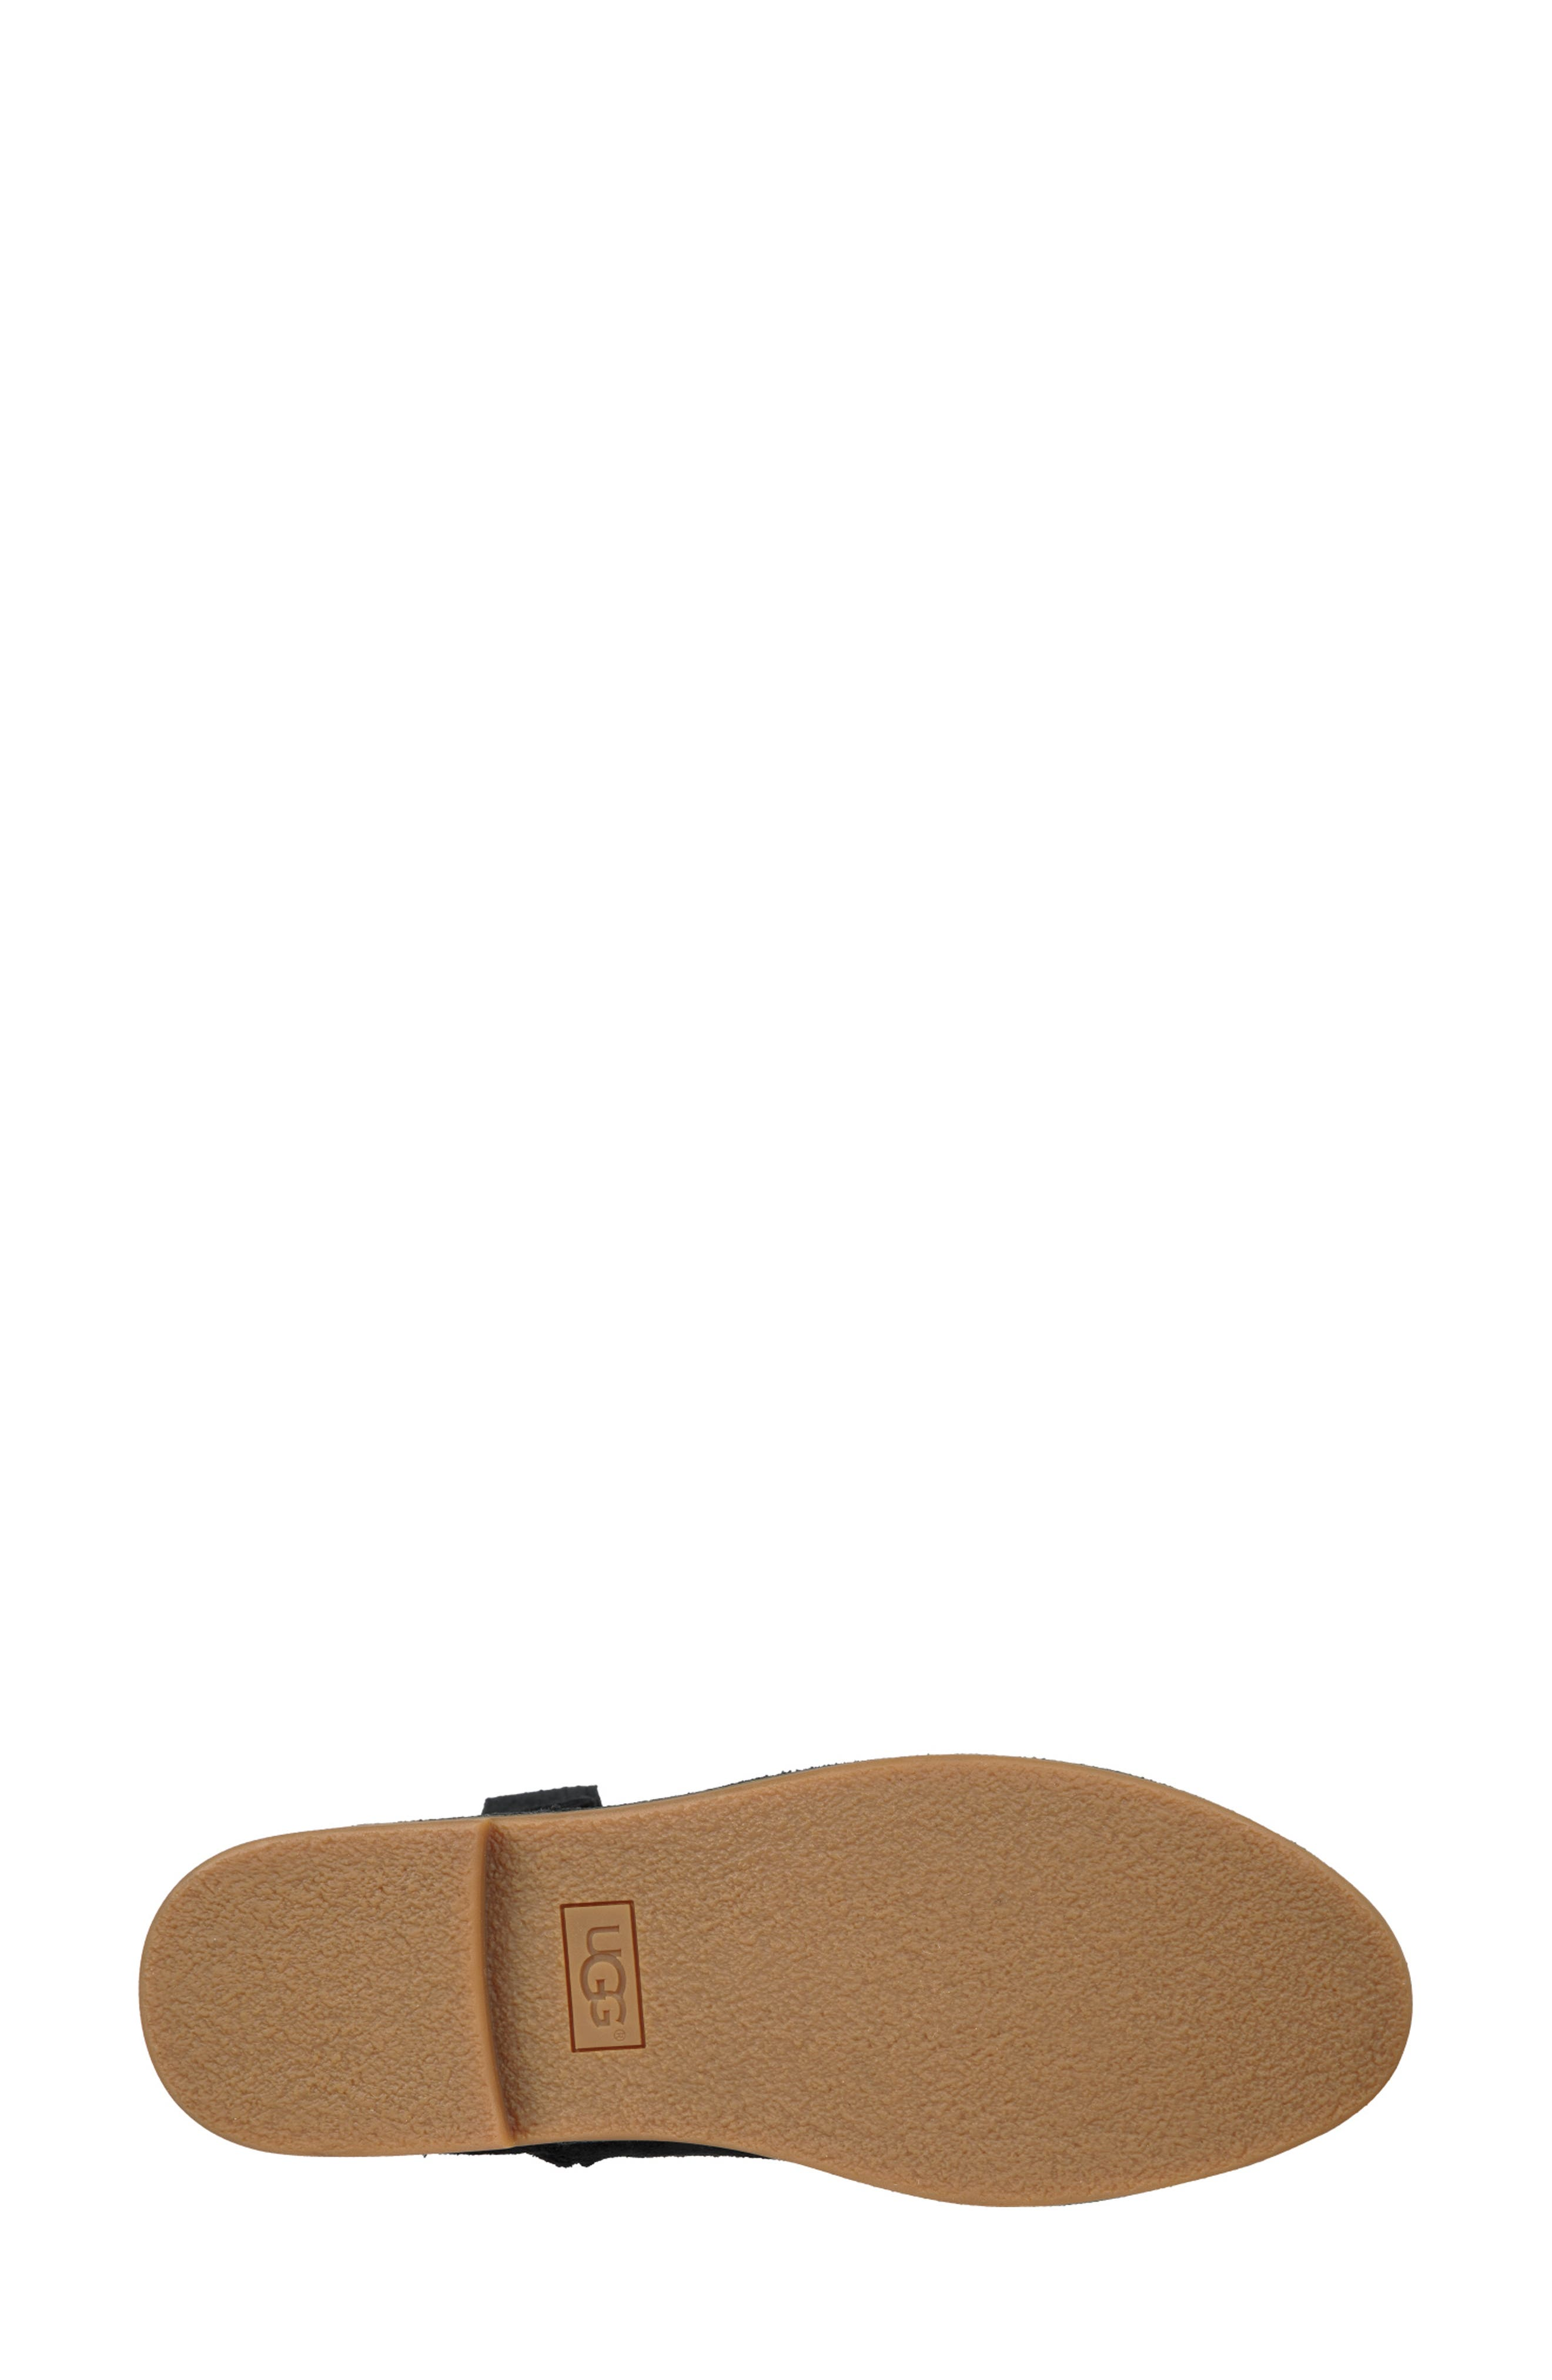 UGG<SUP>®</SUP>, Catica Boot, Alternate thumbnail 5, color, 001